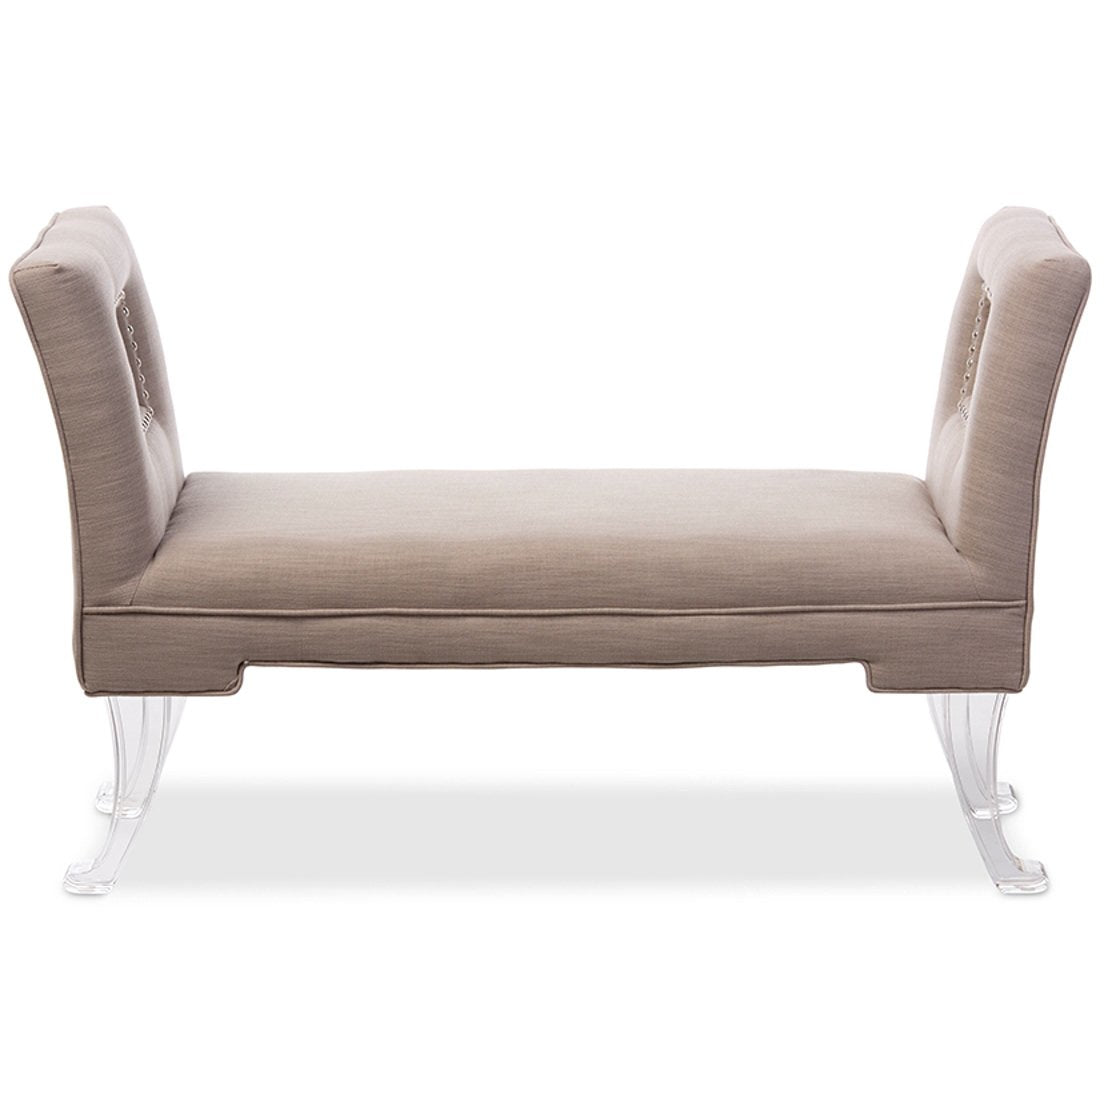 Baxton Studio Bessie Modern and Contemporary Beige Linen Upholstered Lux Flared Arms Ottoman Bench with Flared Acrylic Legs Baxton Studio-benches-Minimal And Modern - 1